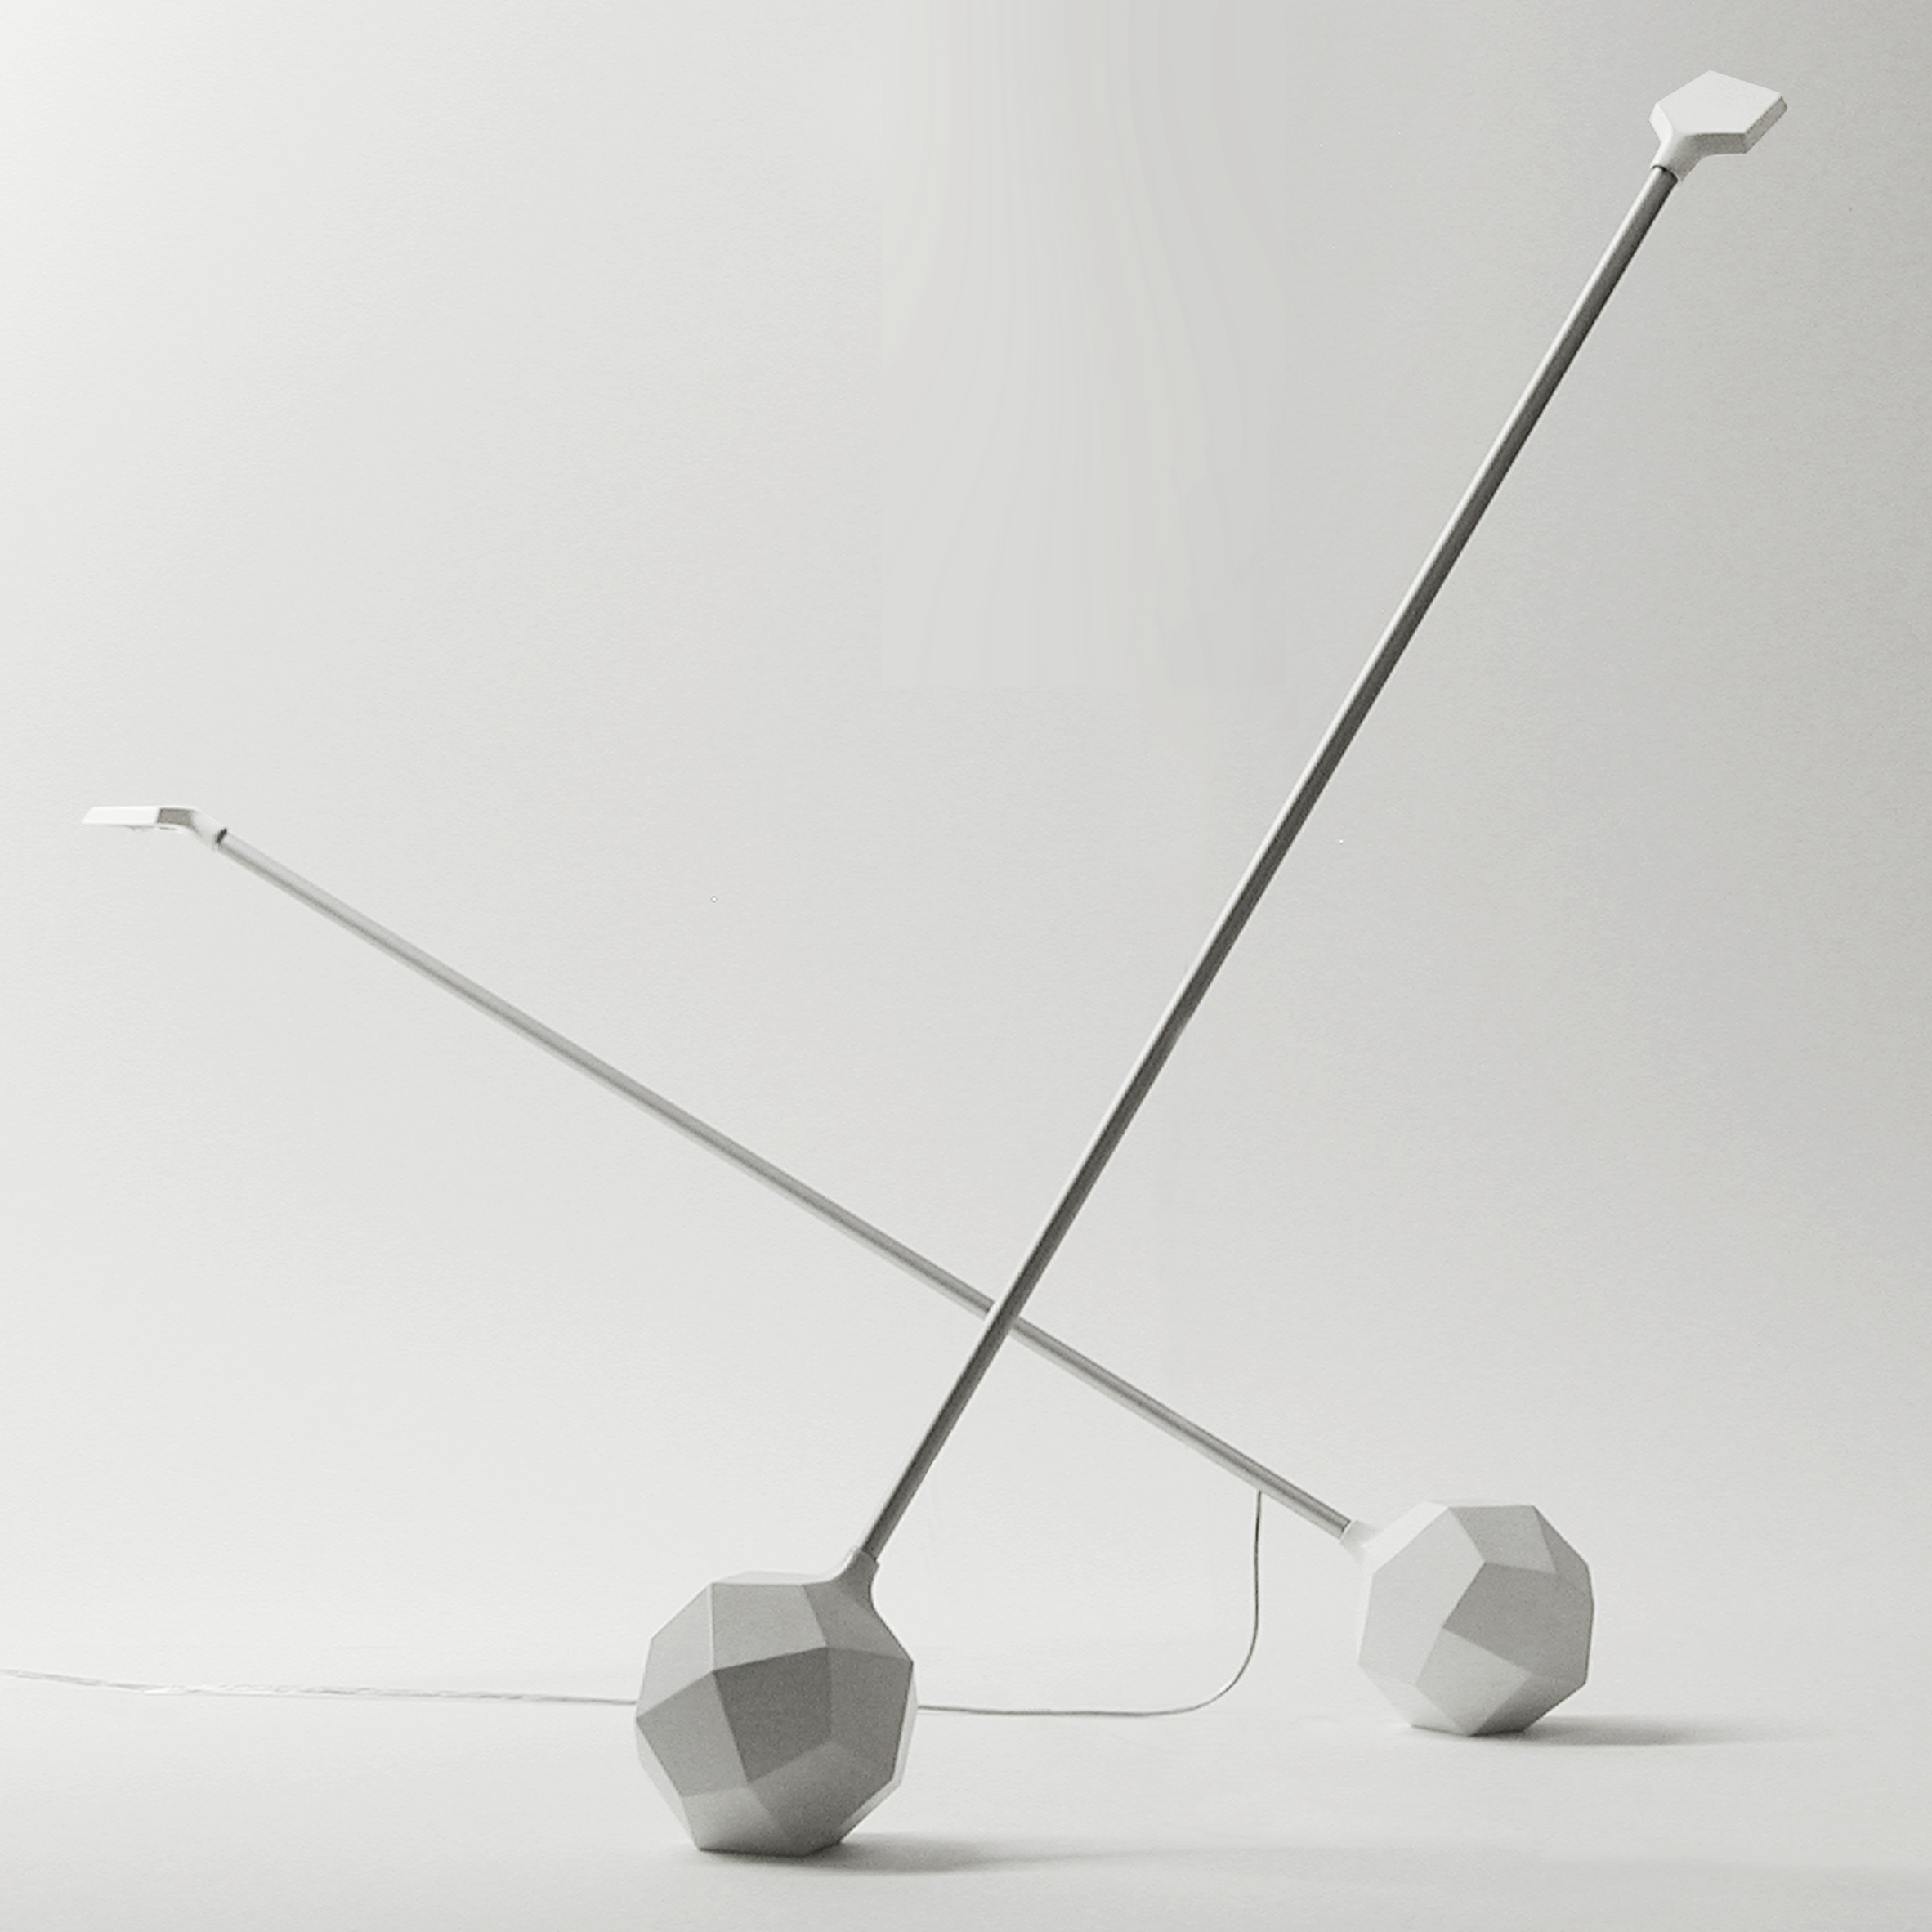 Arihiro Miyake's first lamp for Moooi was the Miyake launched in 2010.